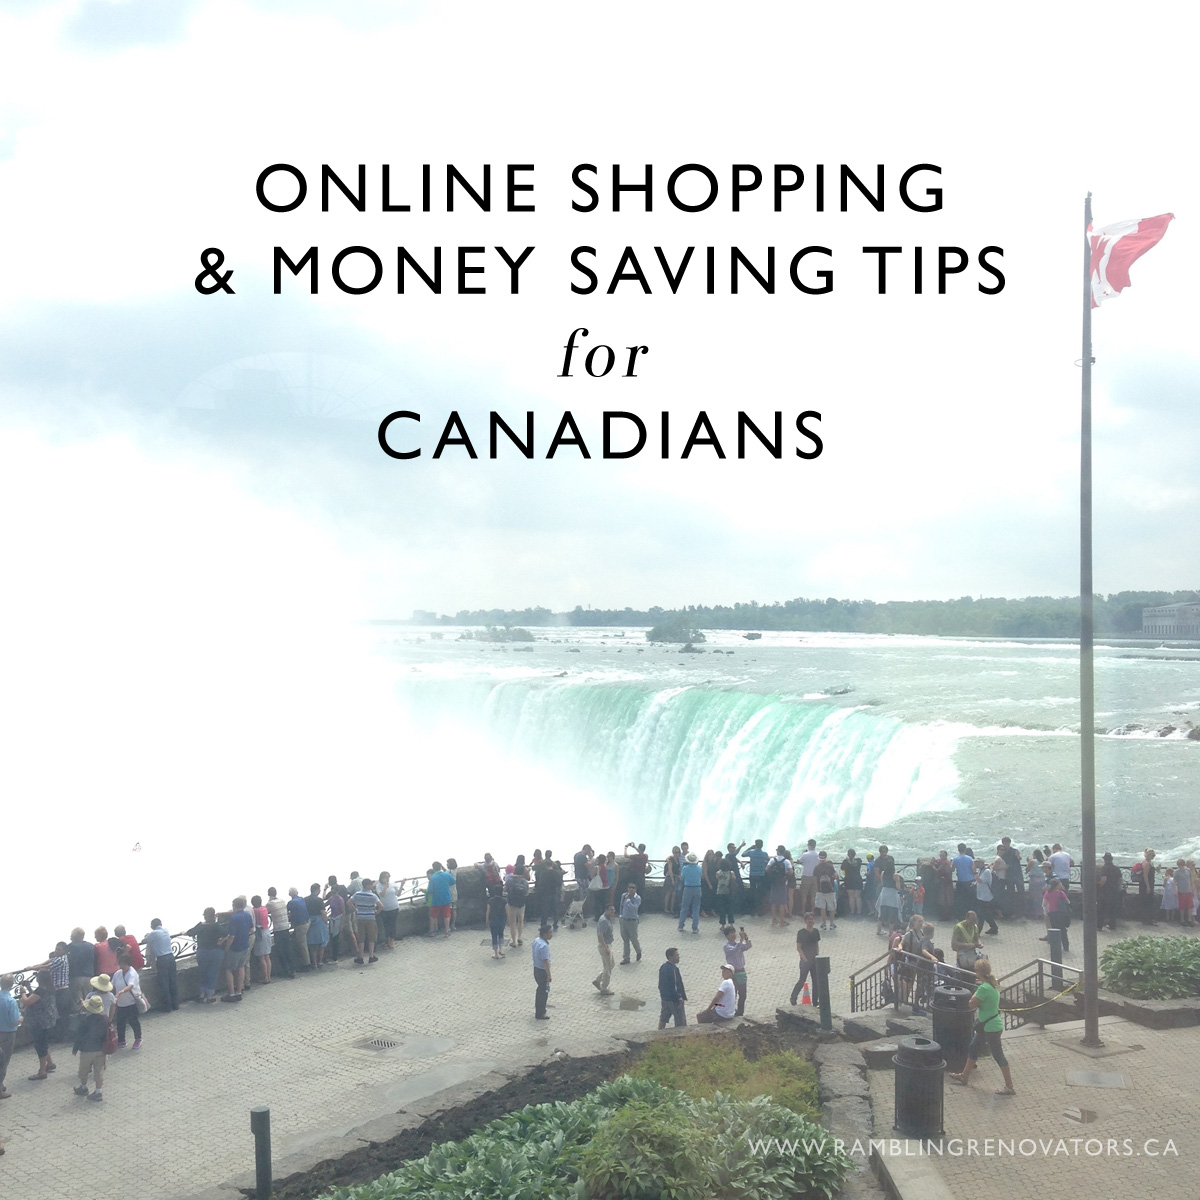 online shopping and money saving tips for canadians | ramblingrenovators.ca